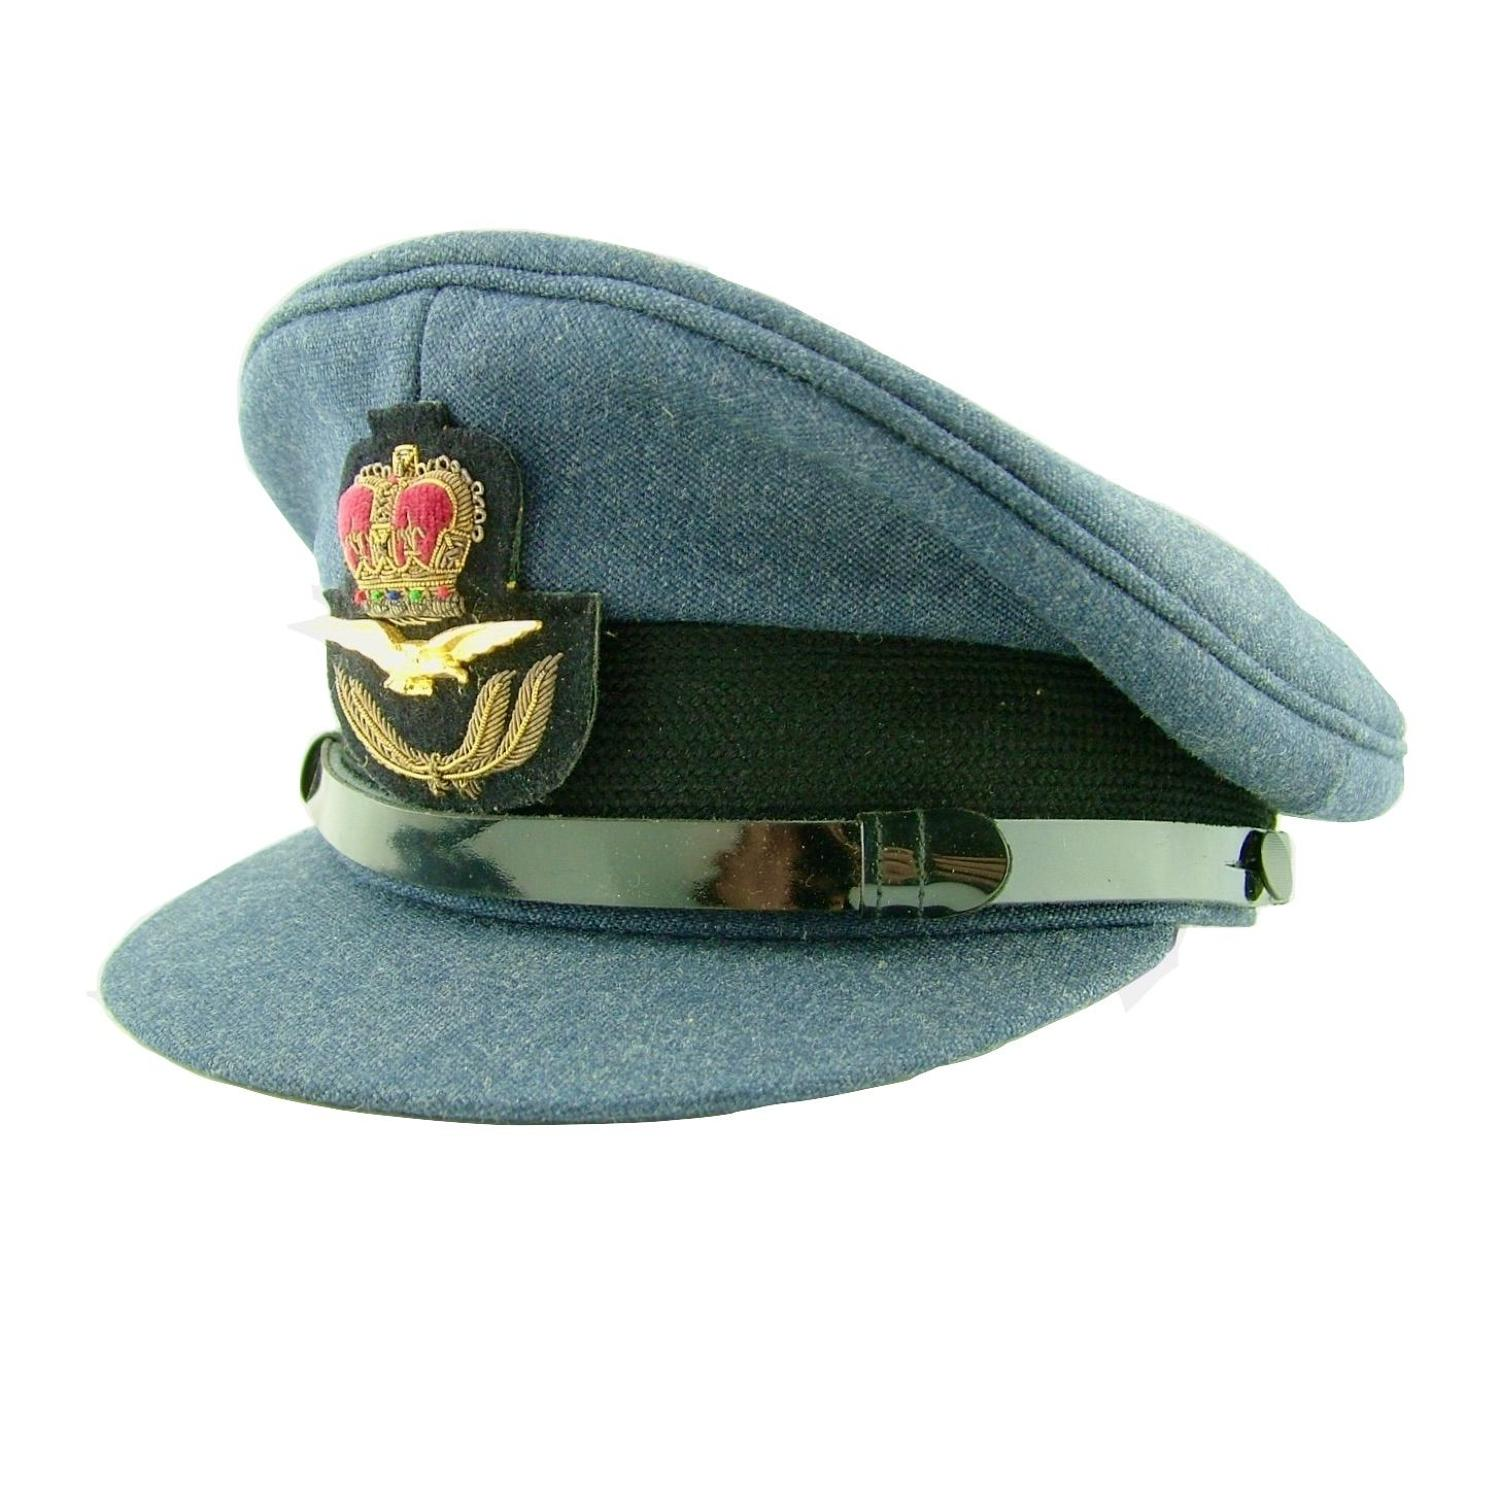 RAF service dress cap - postwar